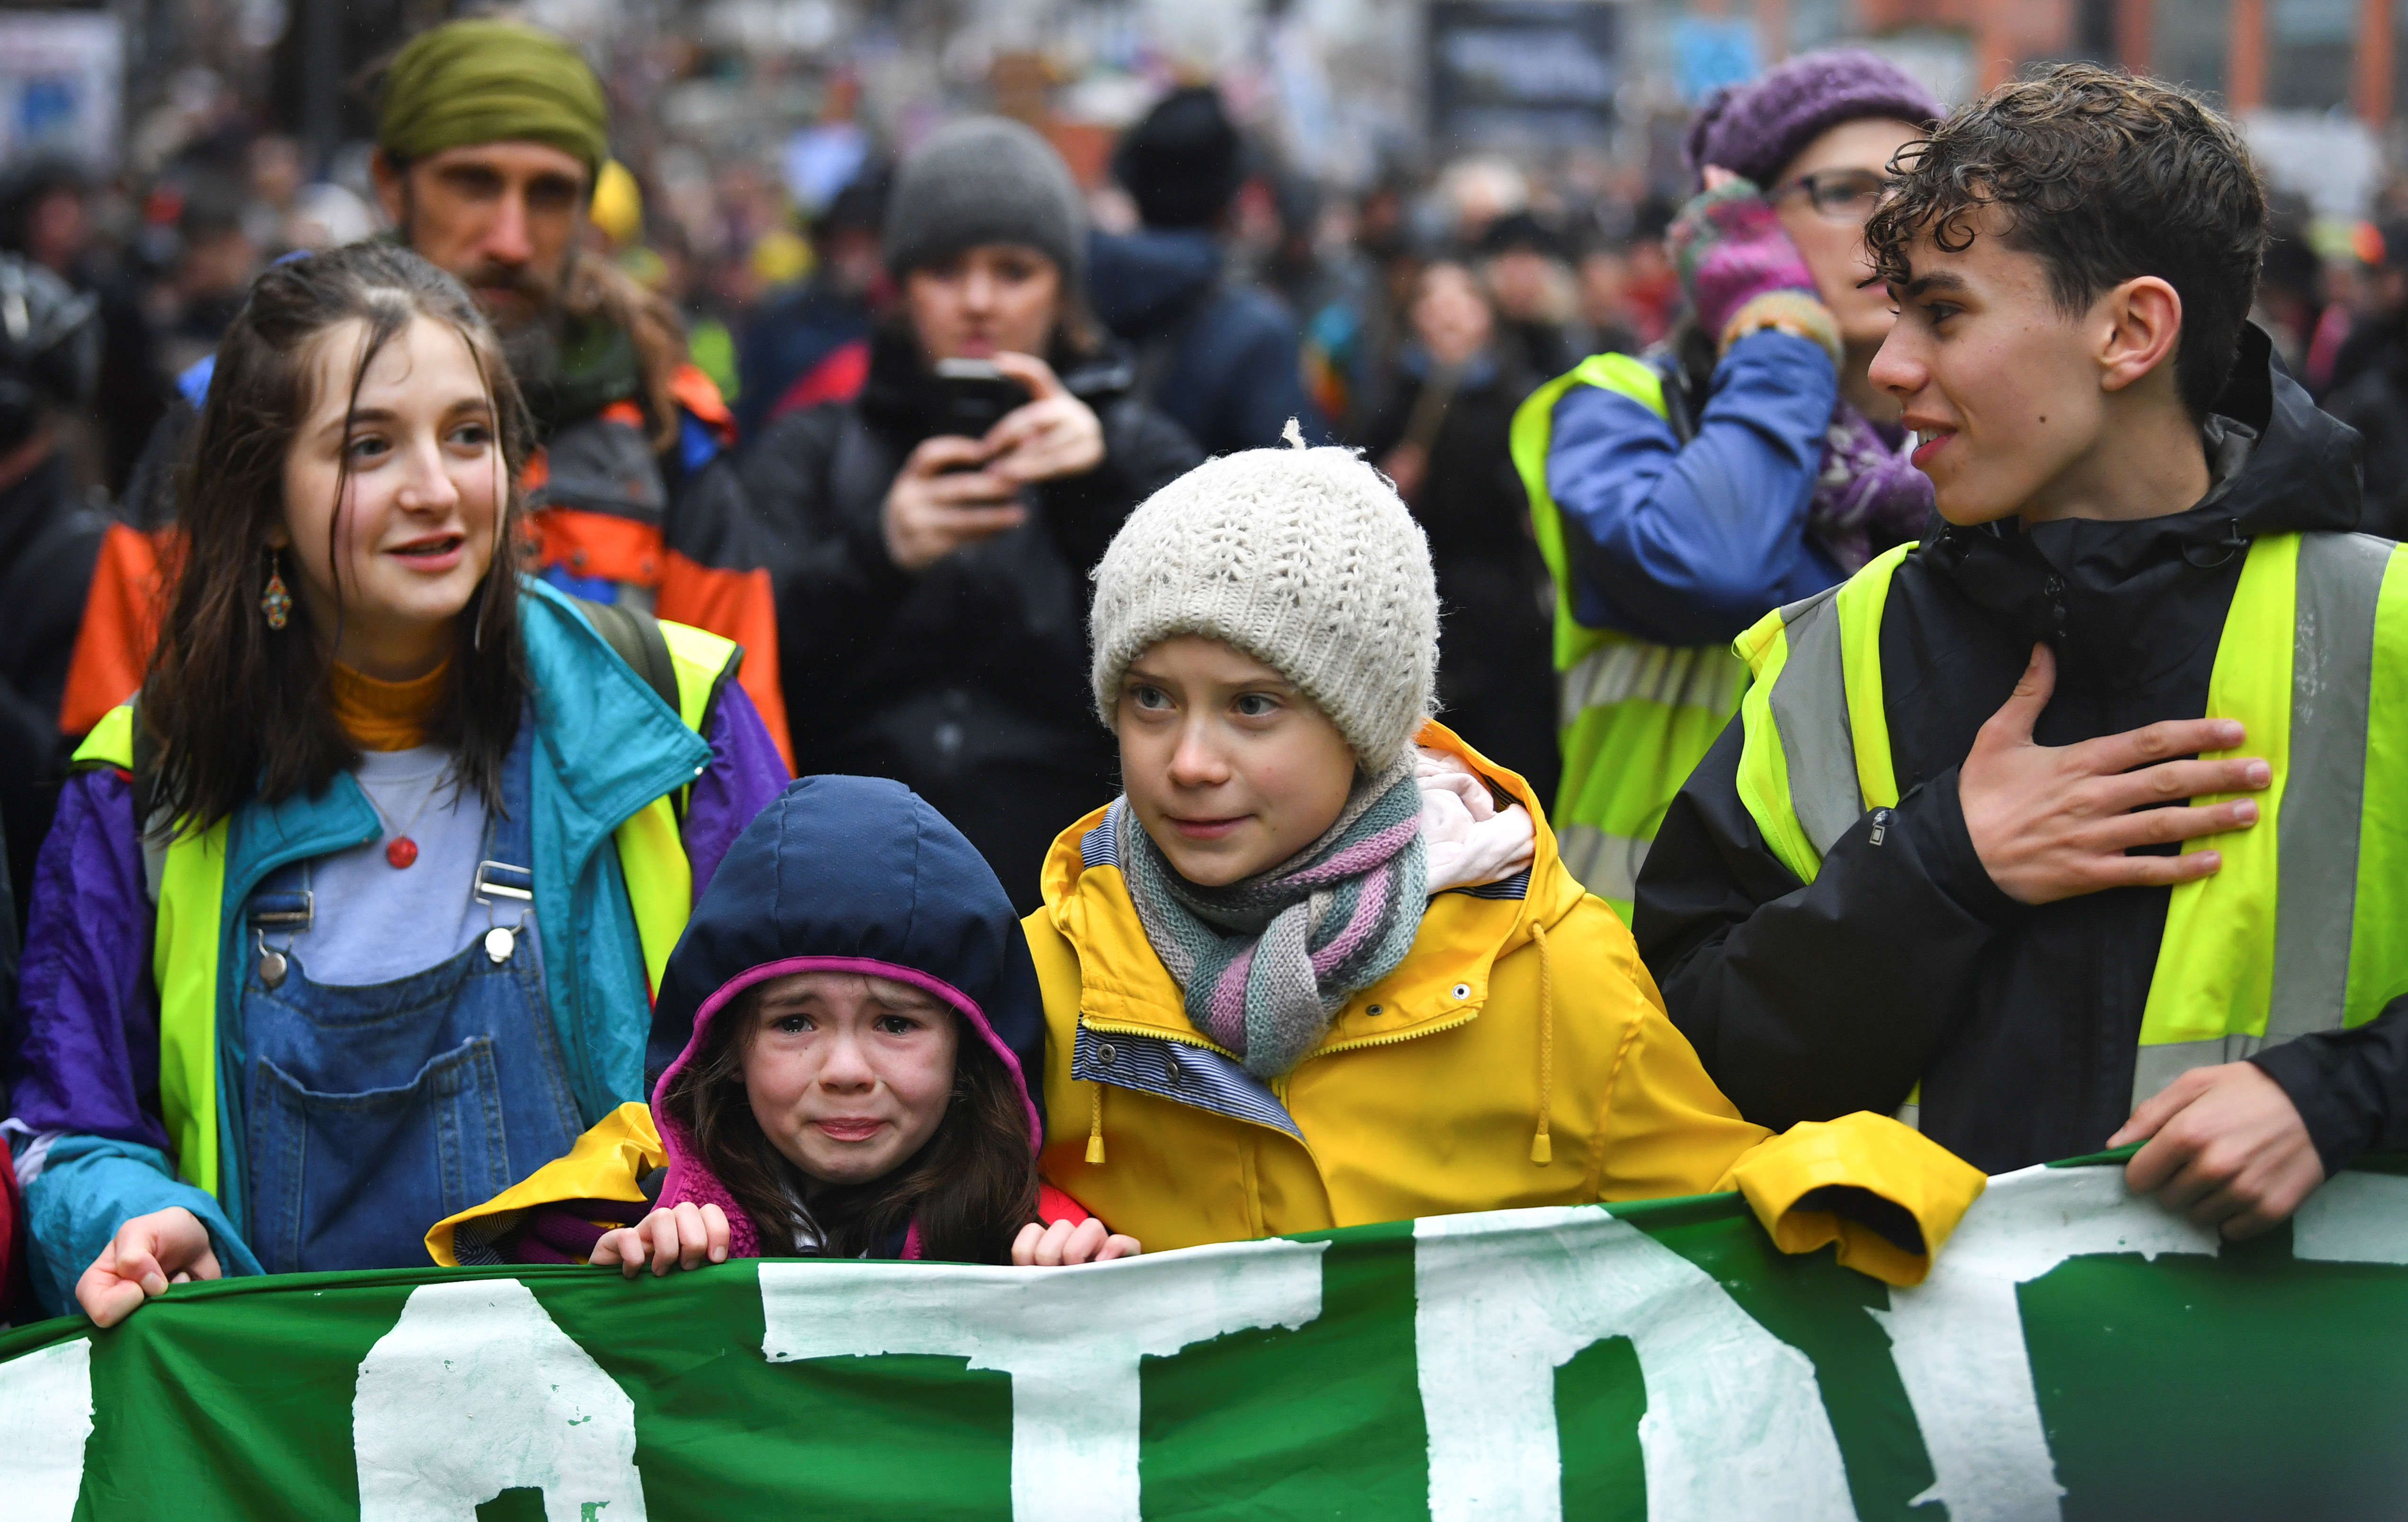 Swedish environmental activist Greta Thunberg embraces a crying girl on a youth climate protest in Bristol, UK.